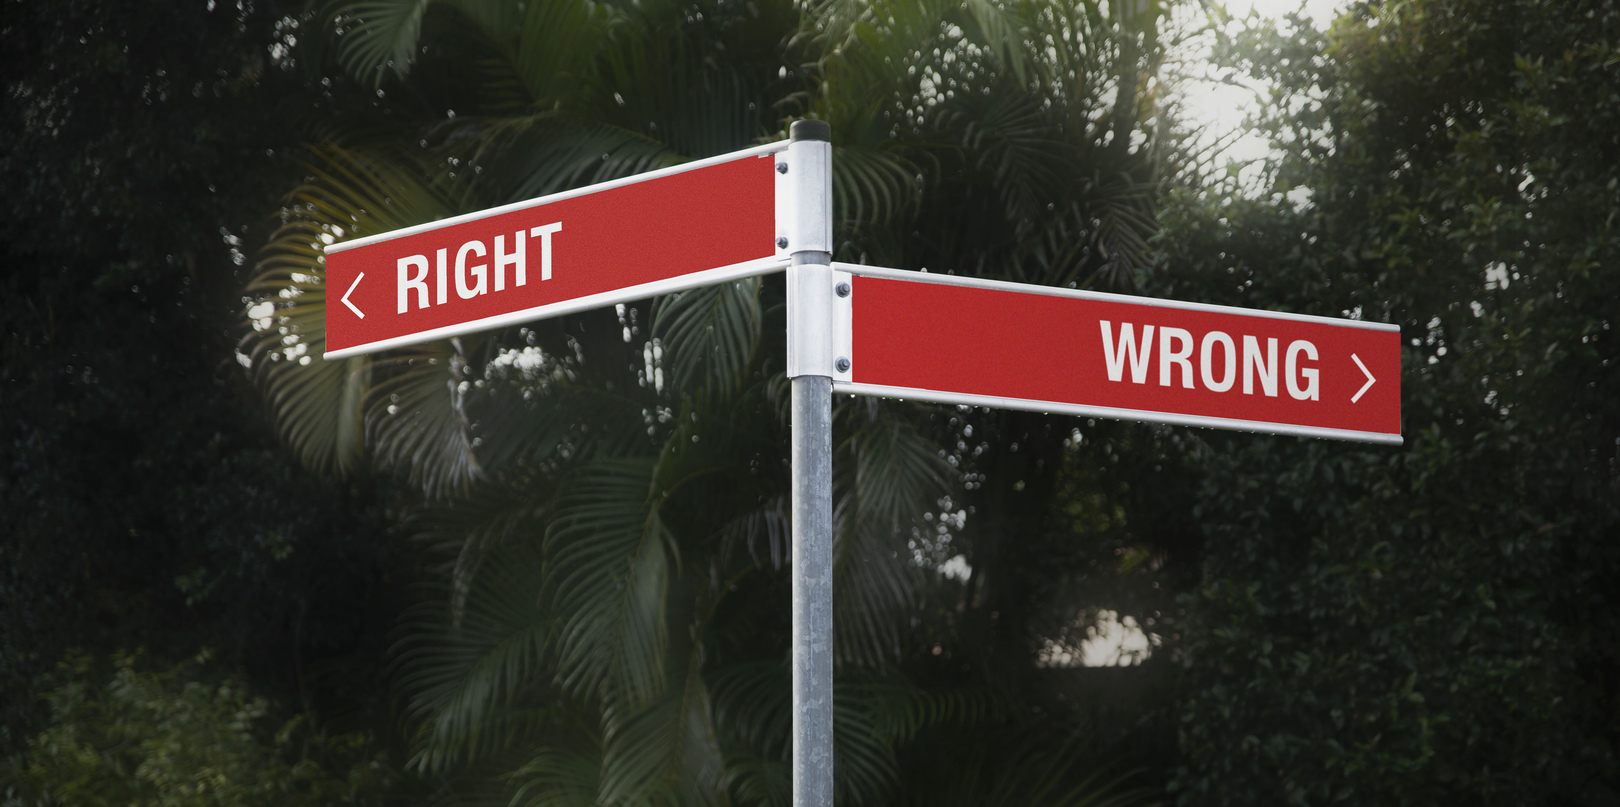 How does being right or wrong impact our lives and relationships?